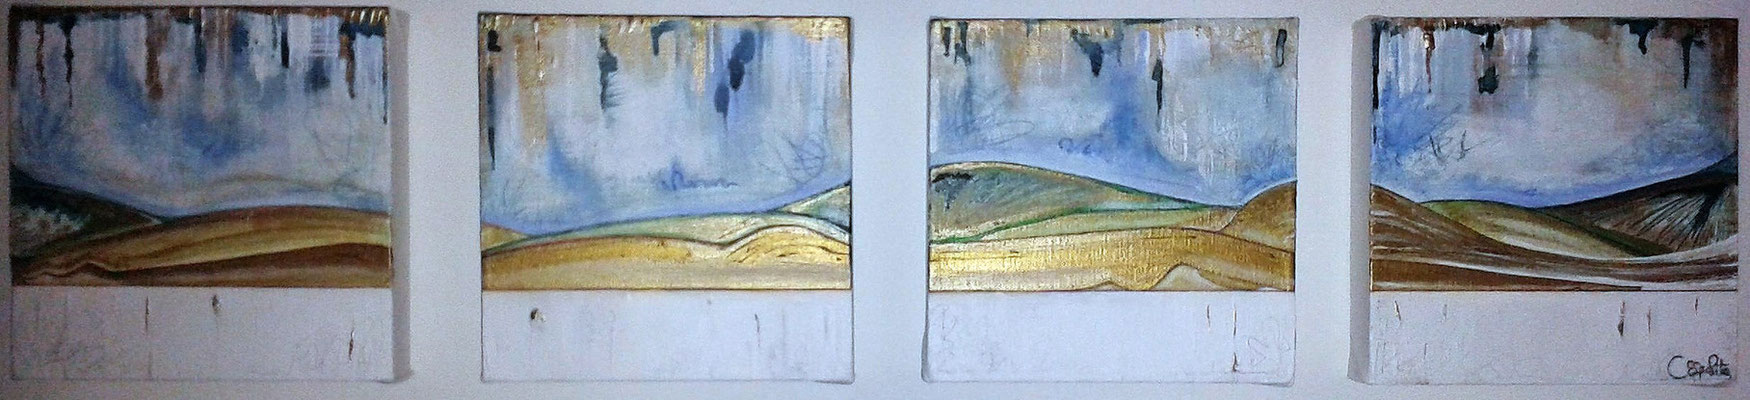 Landscape of a Woman - 4 sections each 20x20 (x4) cm, 2014.